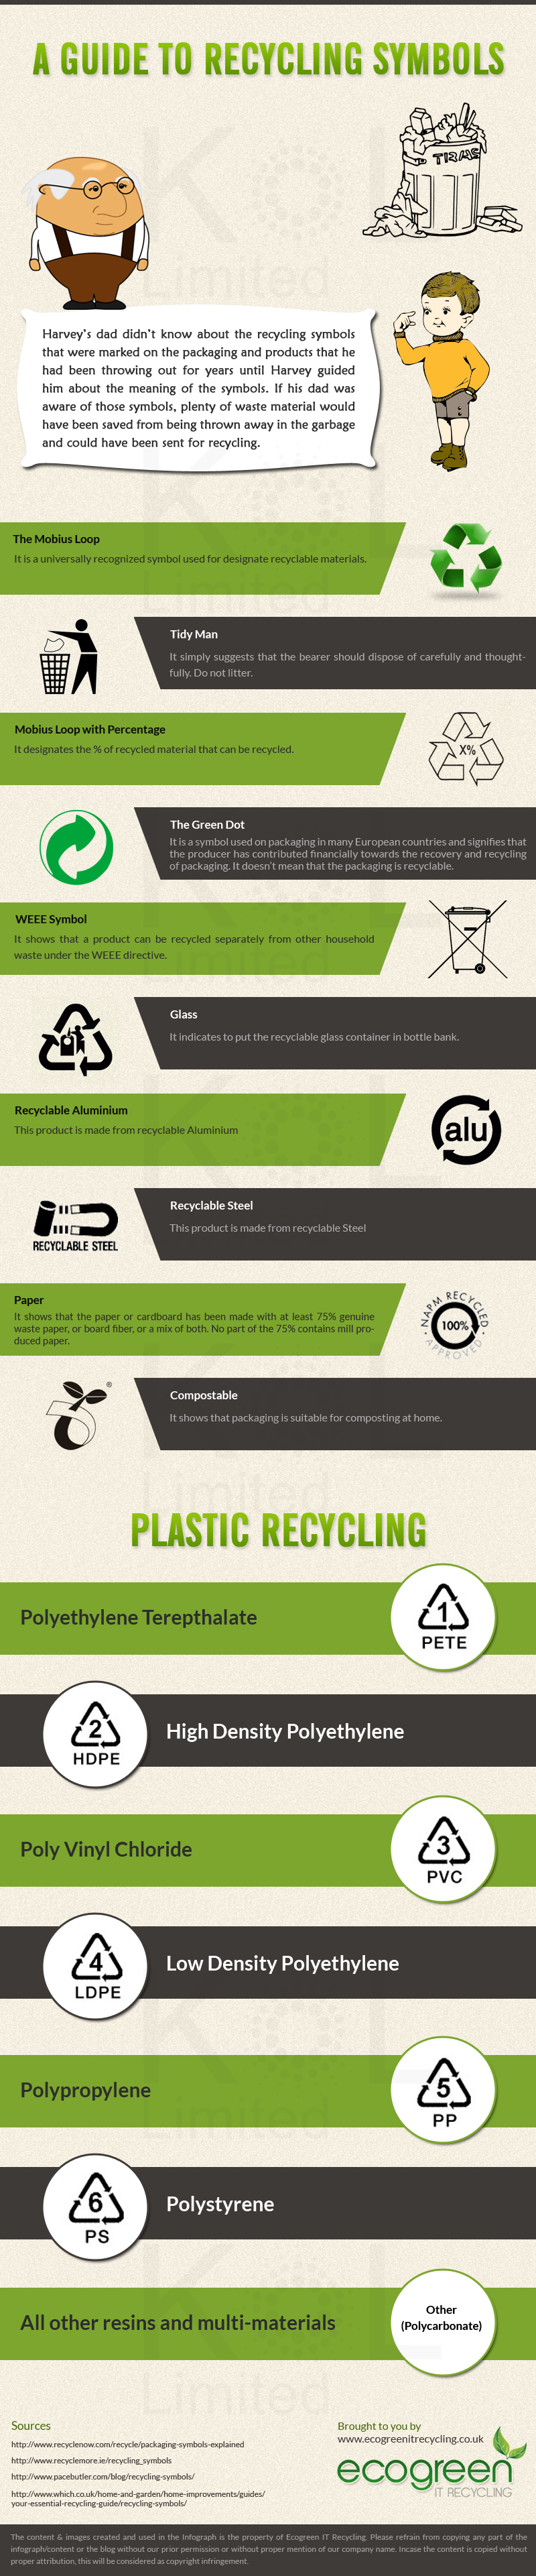 A Guide to Recycling Symbols by Eco Green IT Recycling